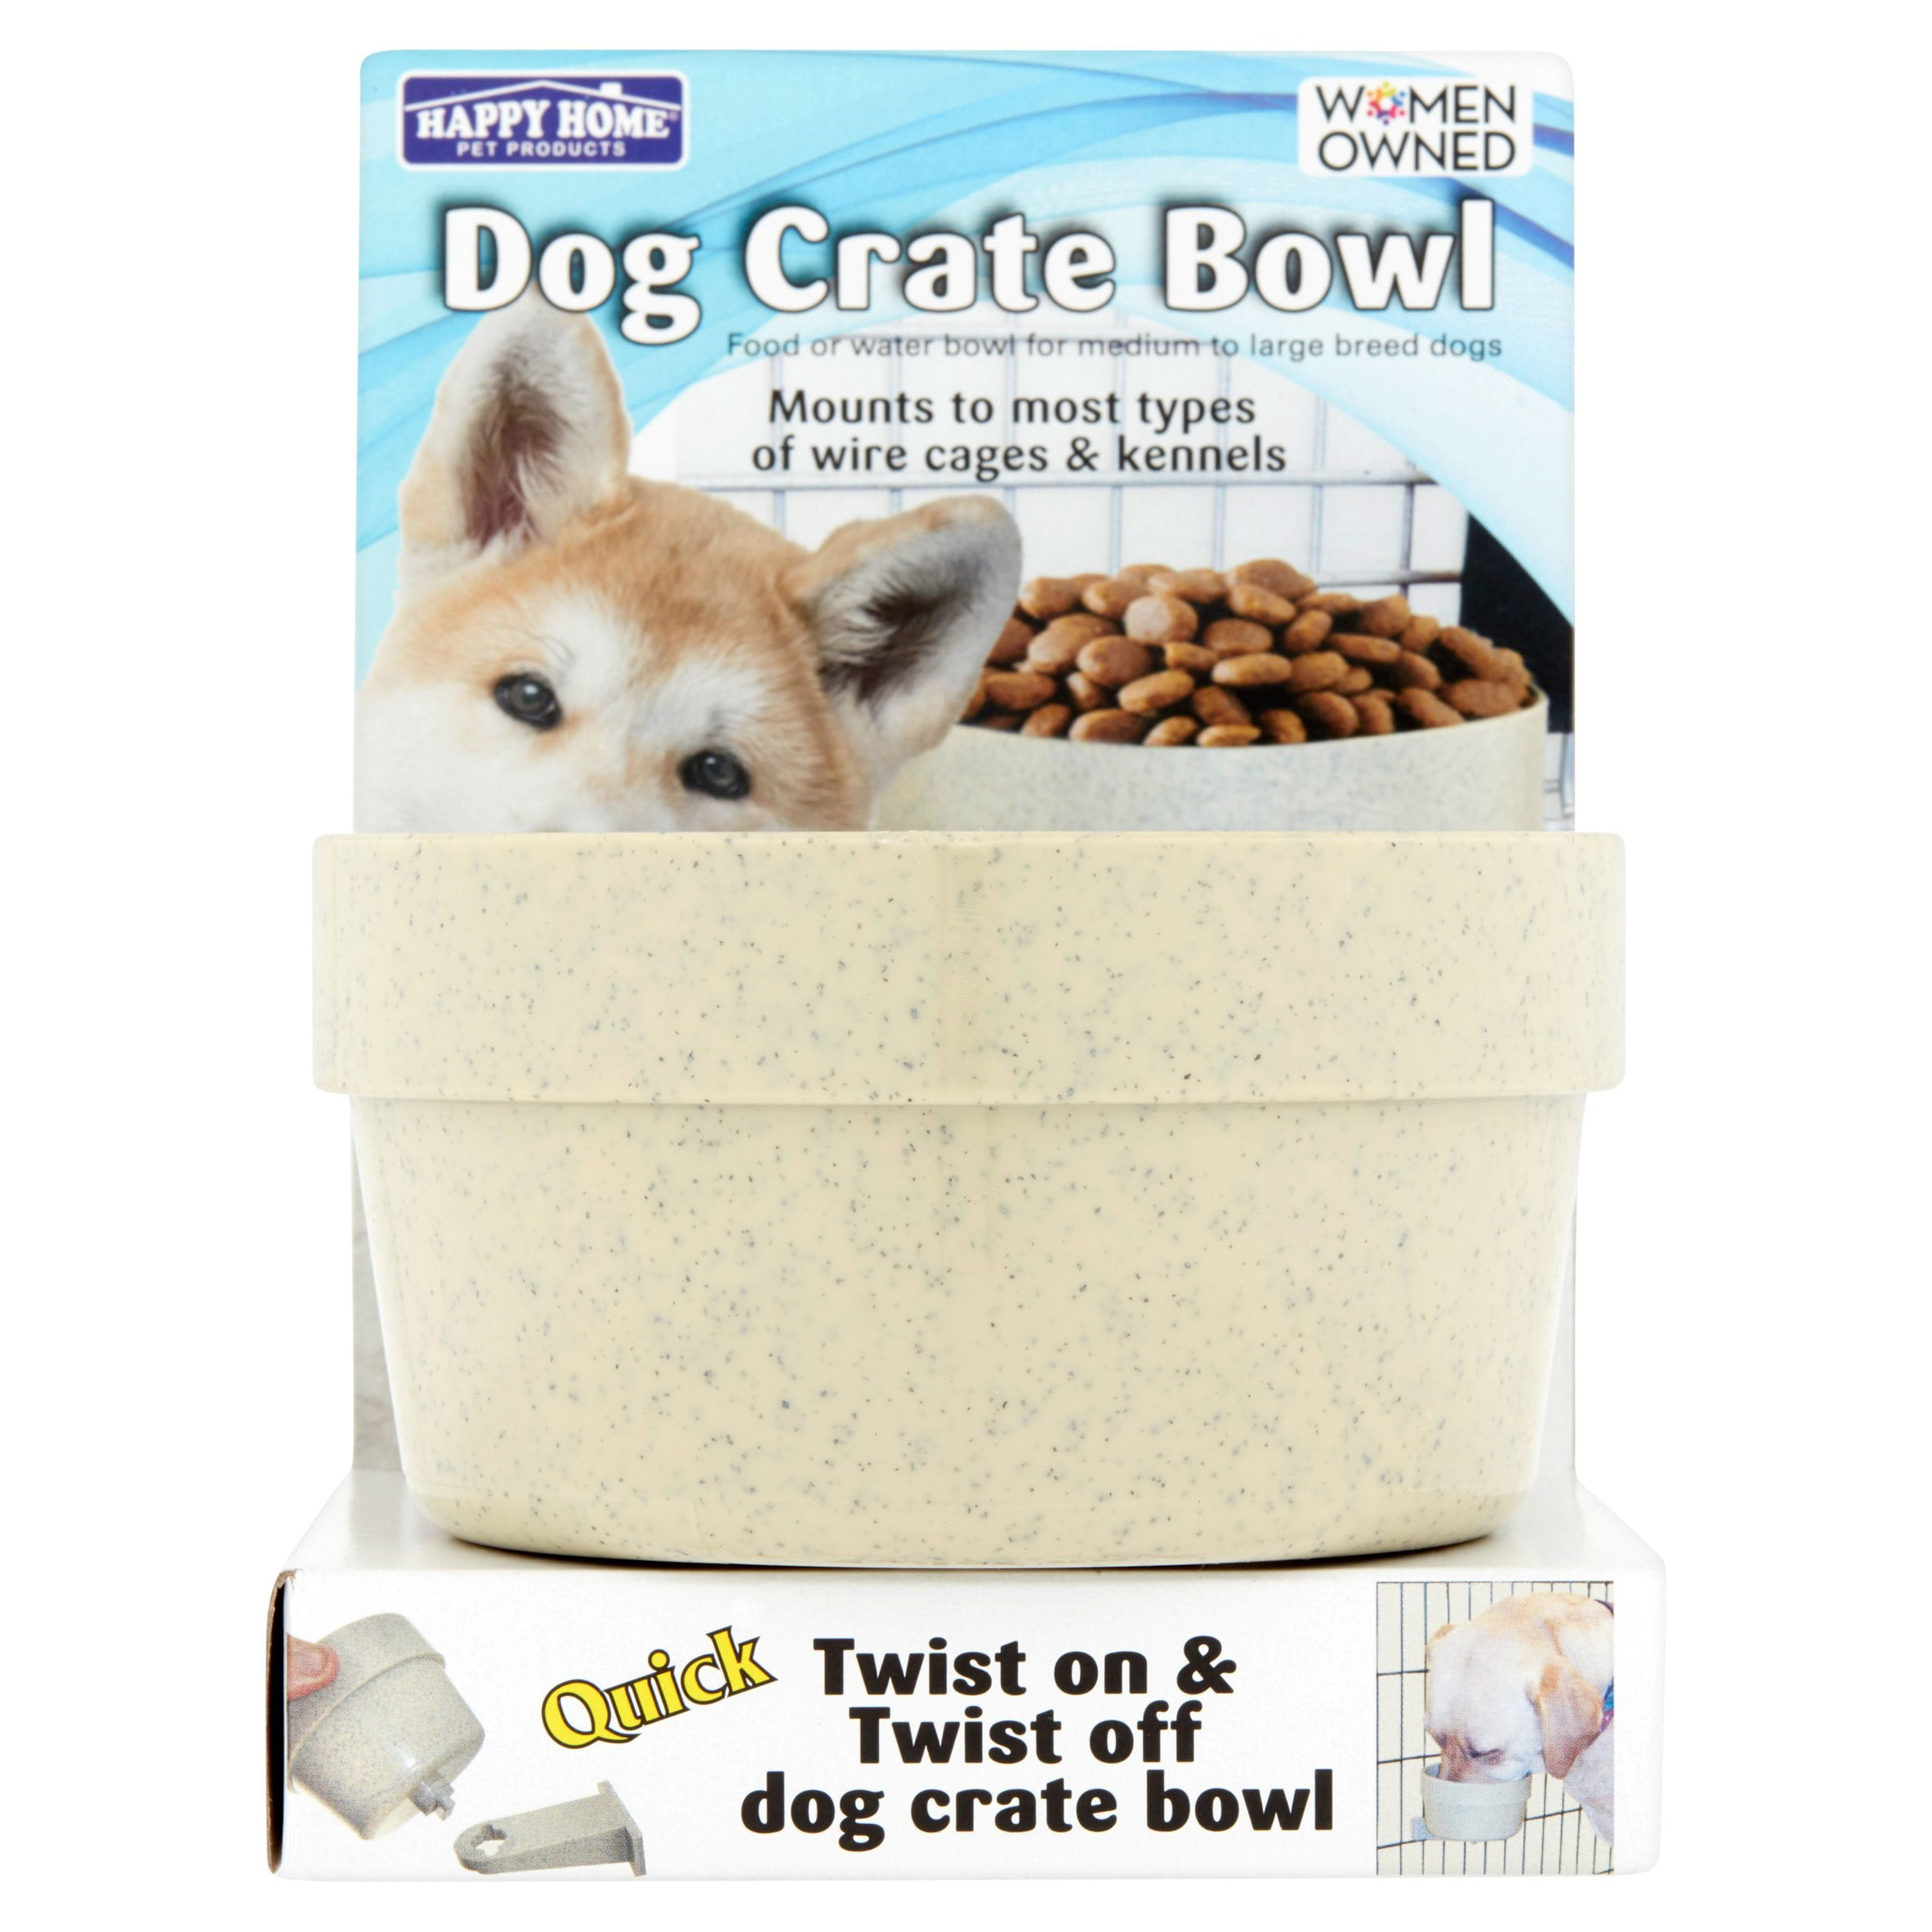 Happy Home Pet Products Dog Crate Bowl For Dogs 1ct Colors